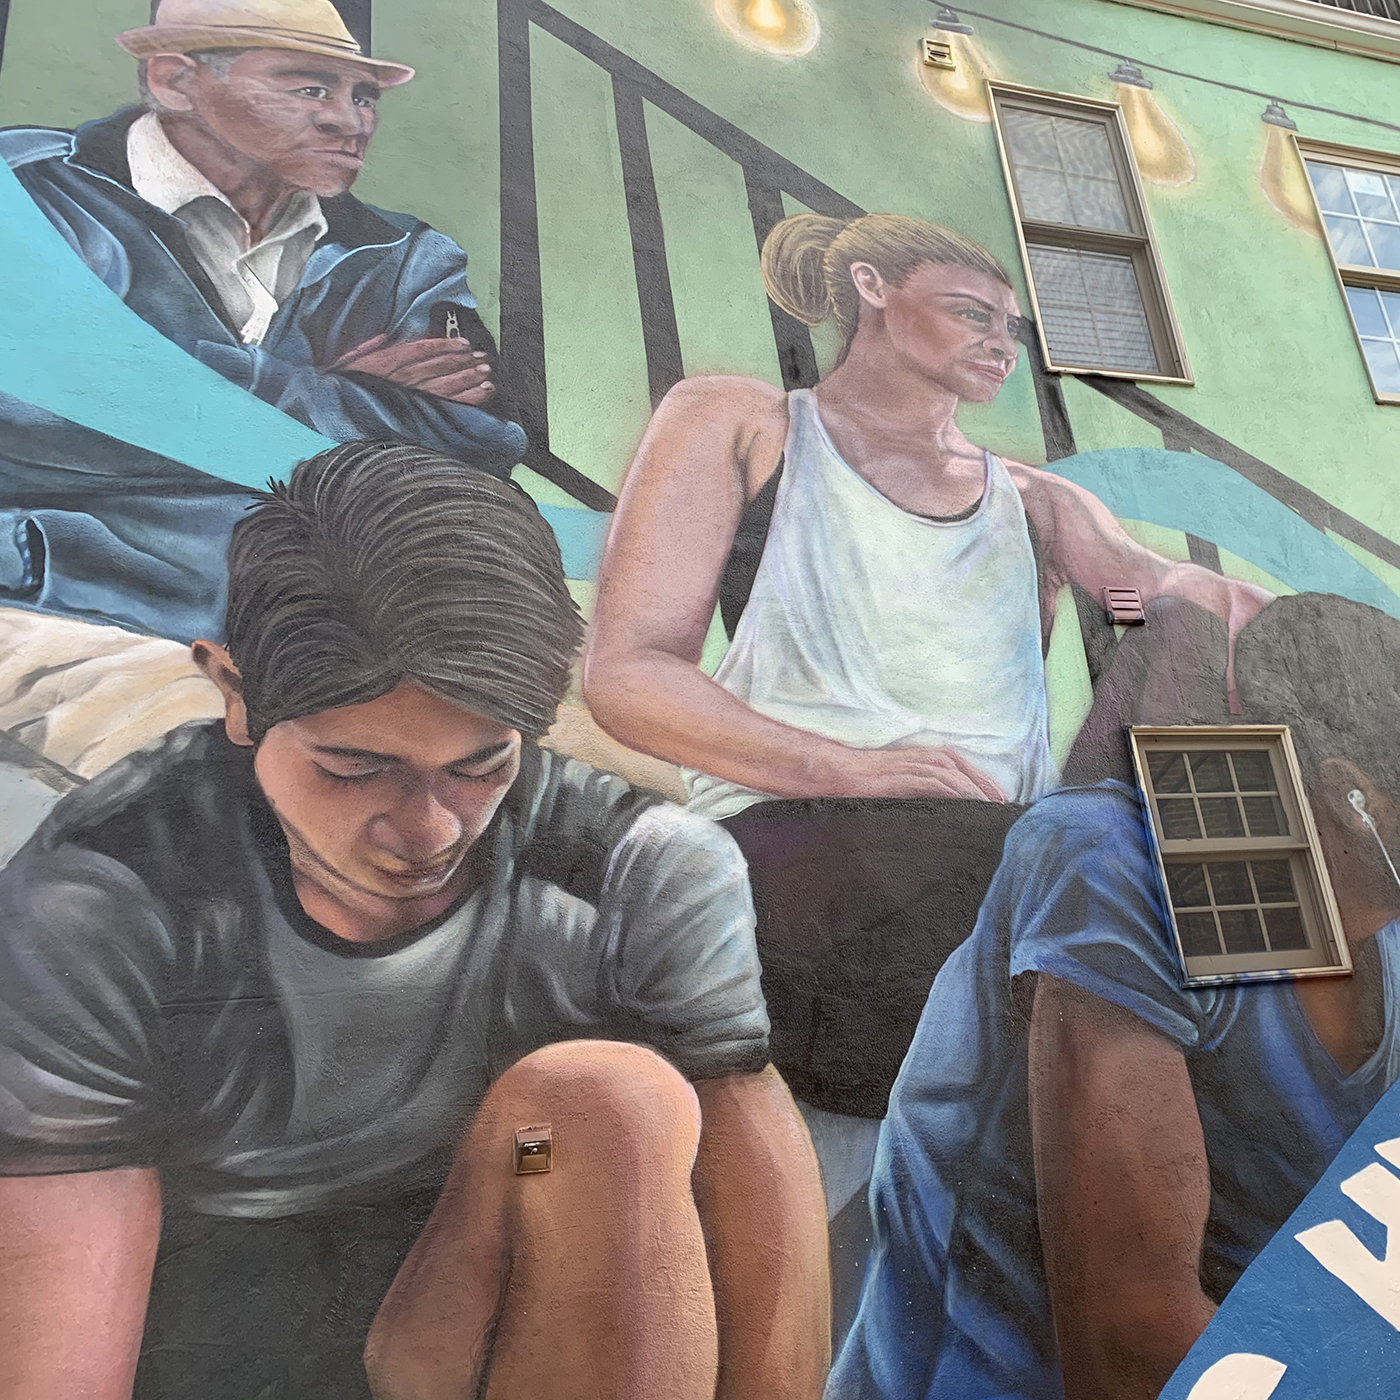 A Baltimore street mural in Patterson Park